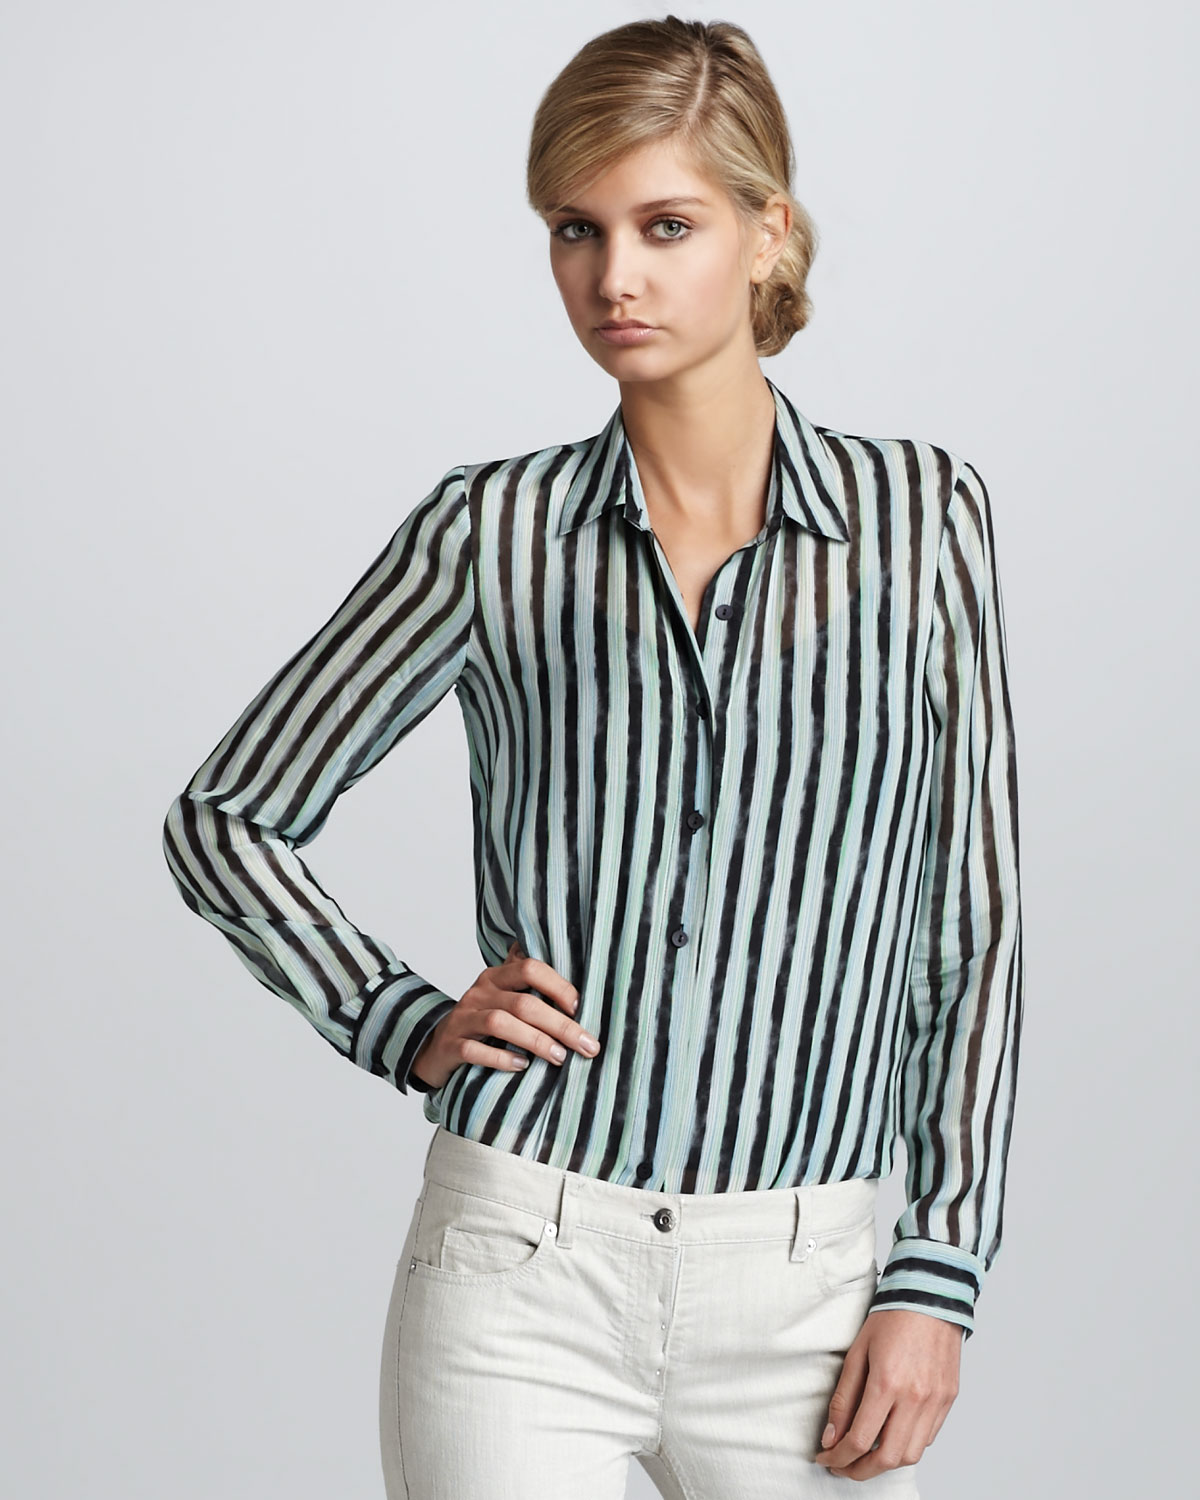 Shop for [HOT] Tie Cuffs Striped Blouse in BLACK L of Blouses and check + hottest styles at ZAFUL. A site with wide selection of trendy fashion style women's clothing, especially swimwear in all kinds which costs at an affordable price.